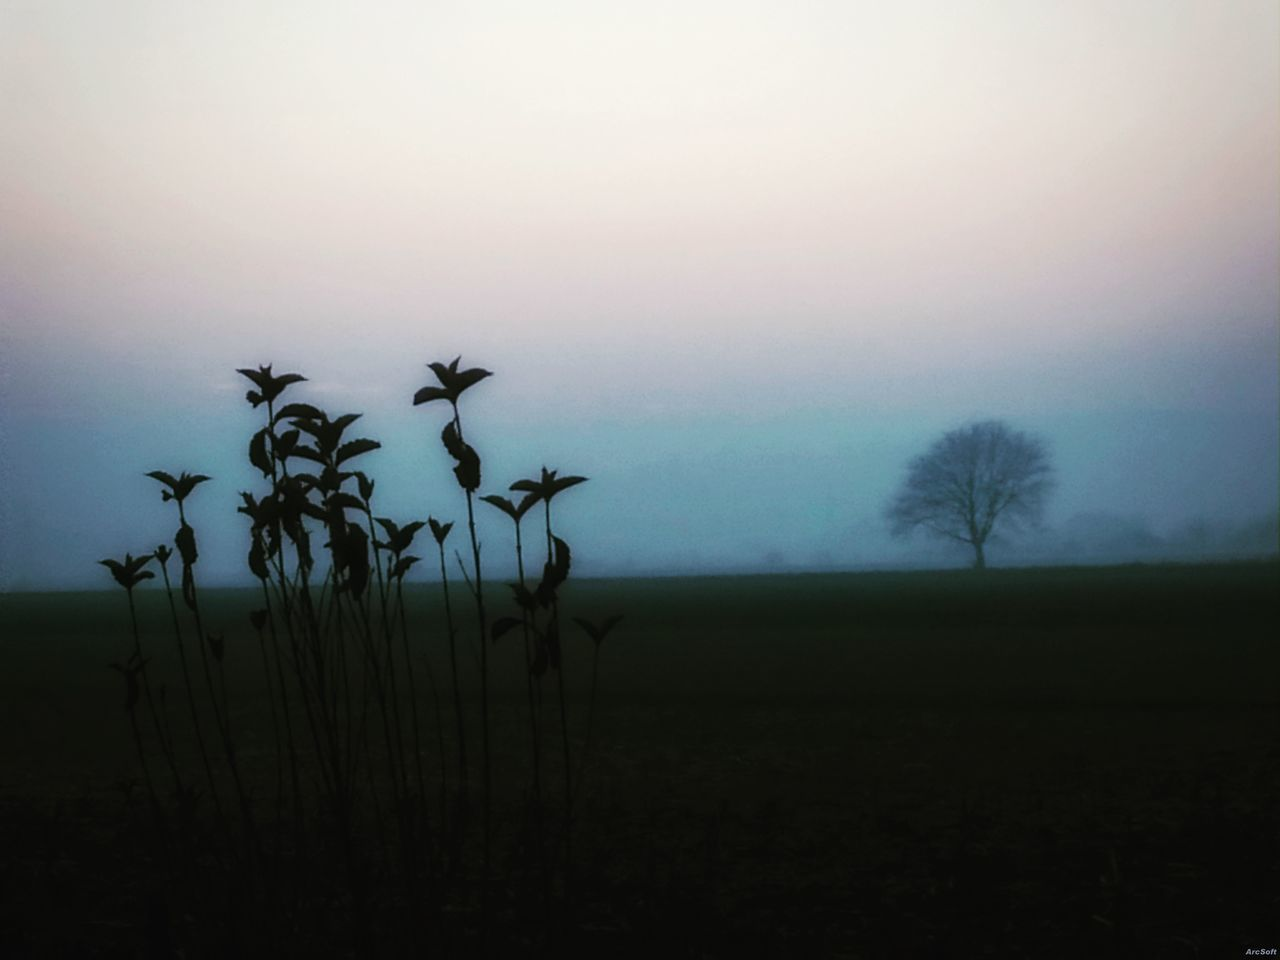 Nature Sky Tree No People Plant Tranquilidad Tranquility Tranquillità Nebbia Neblina